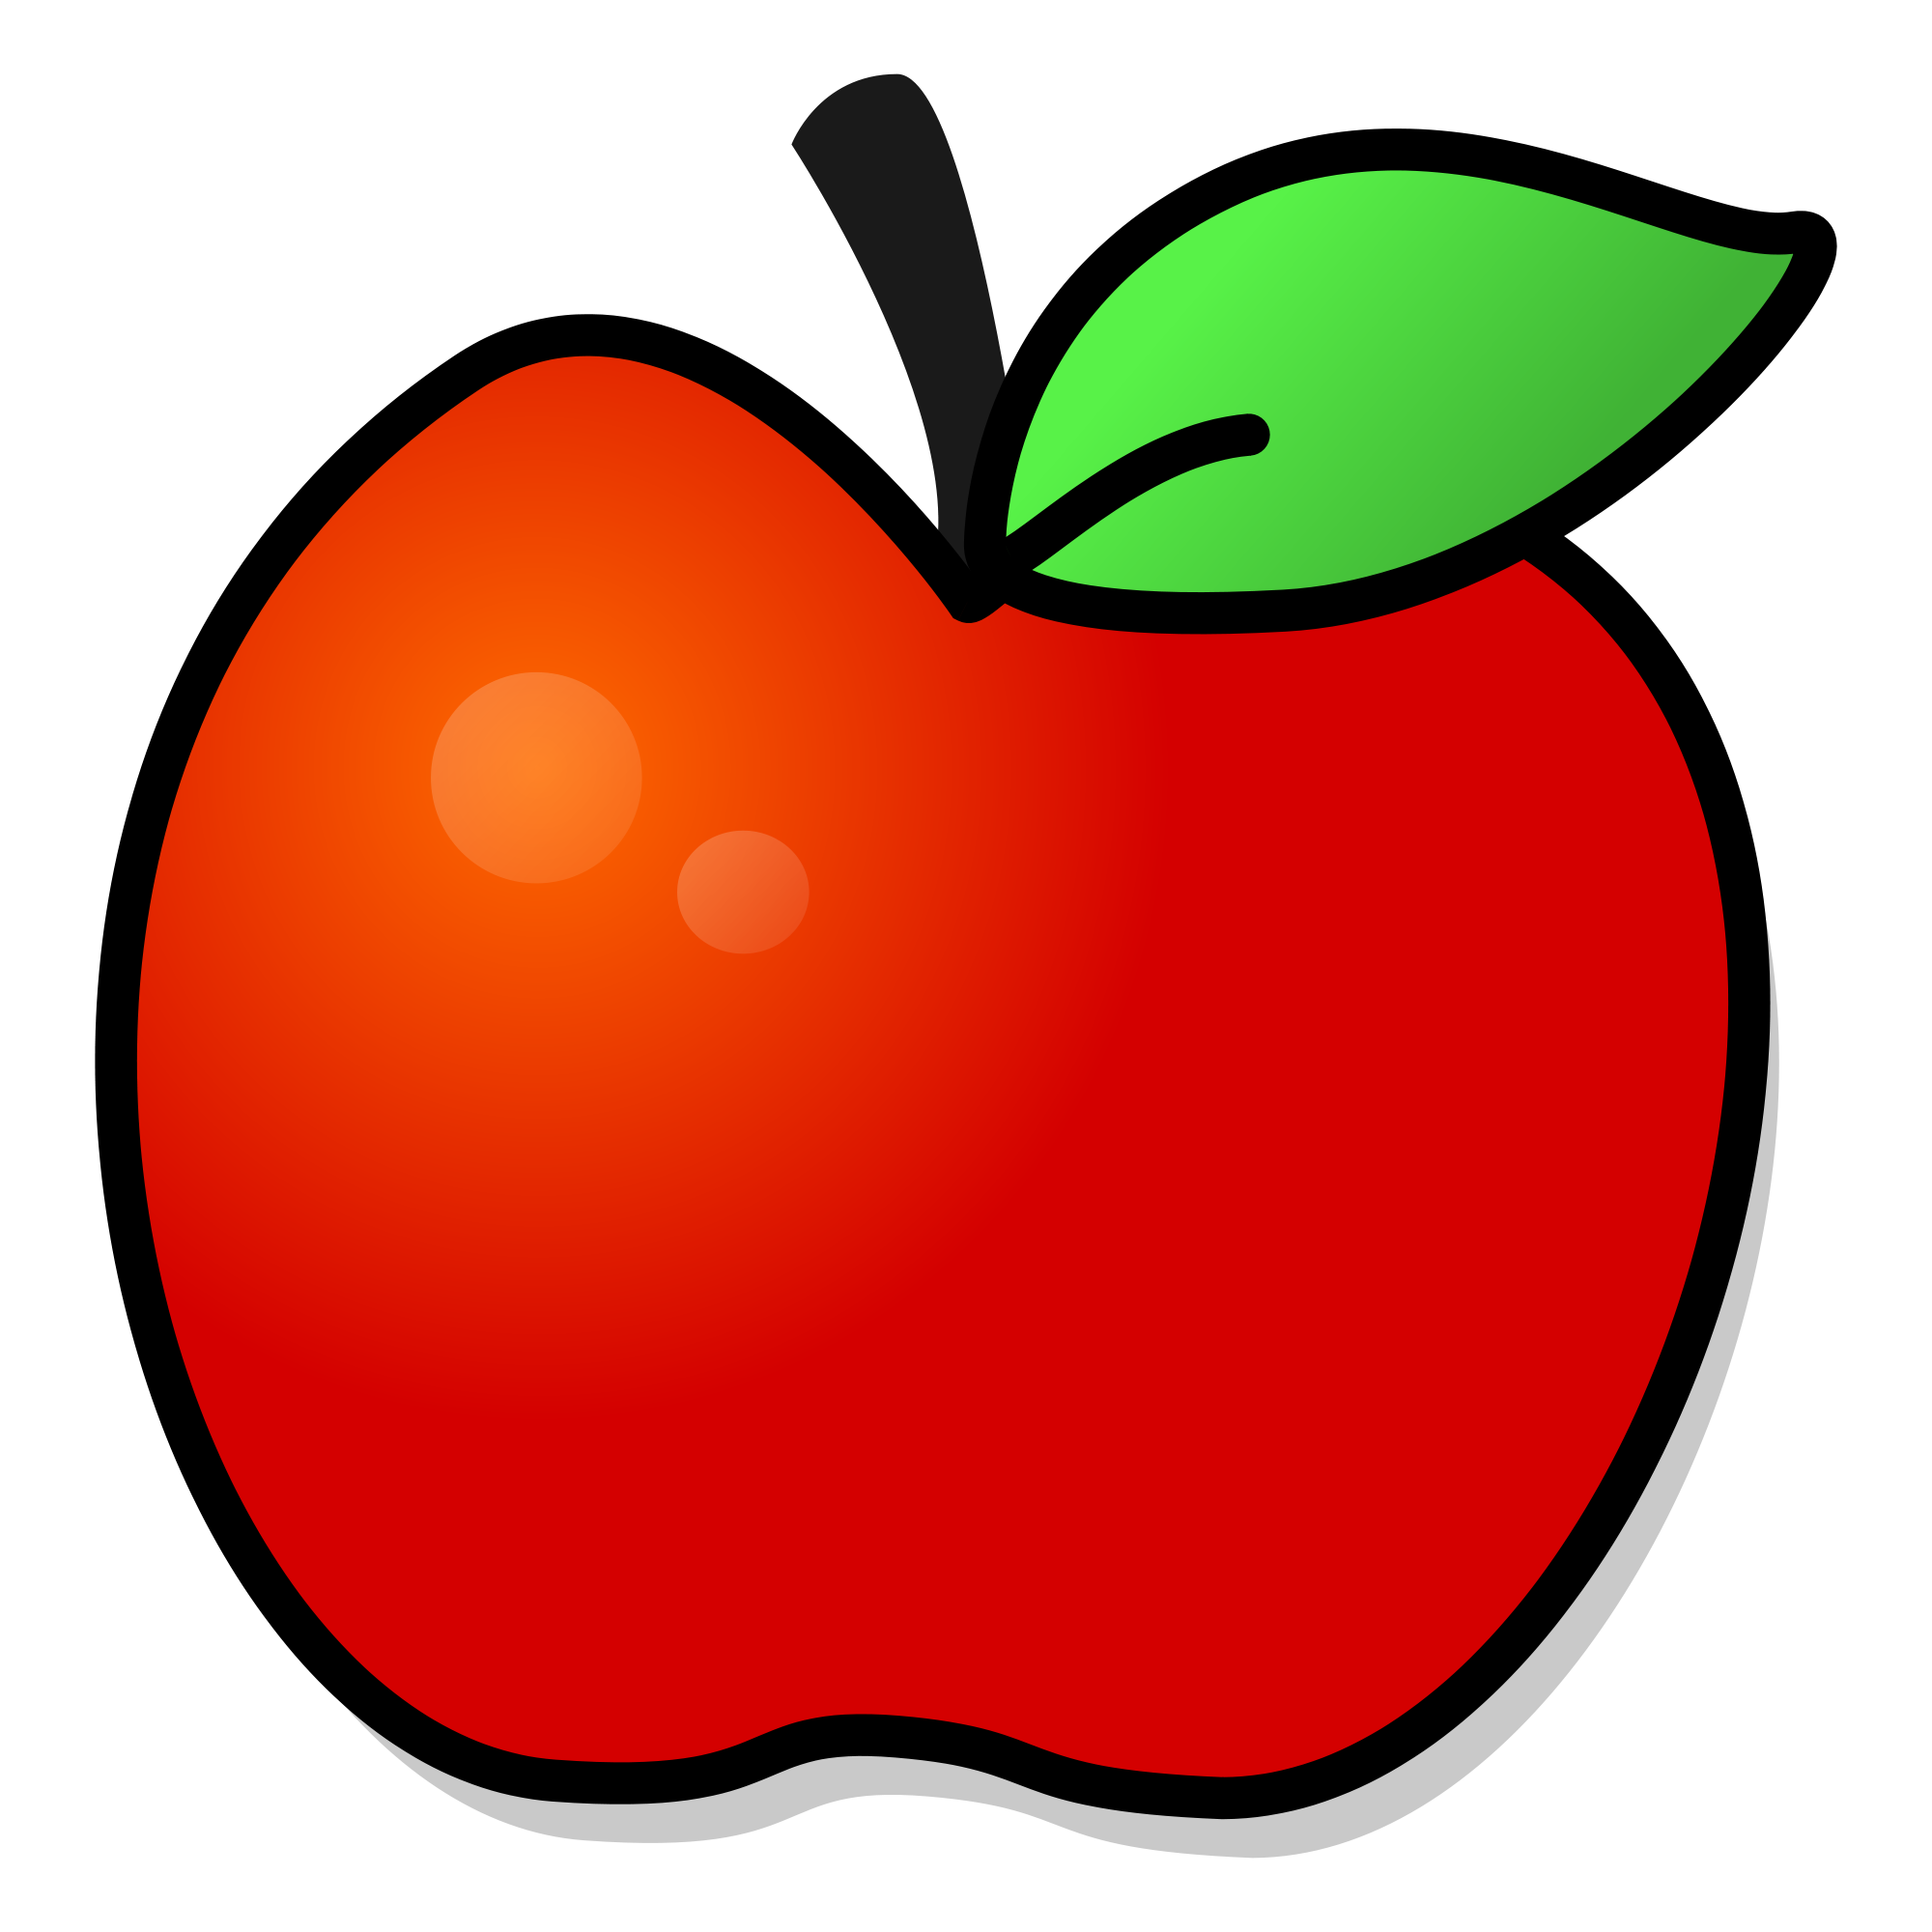 Apple with no leaf clipart banner transparent File:Red apple with leaf.svg - Wikimedia Commons banner transparent